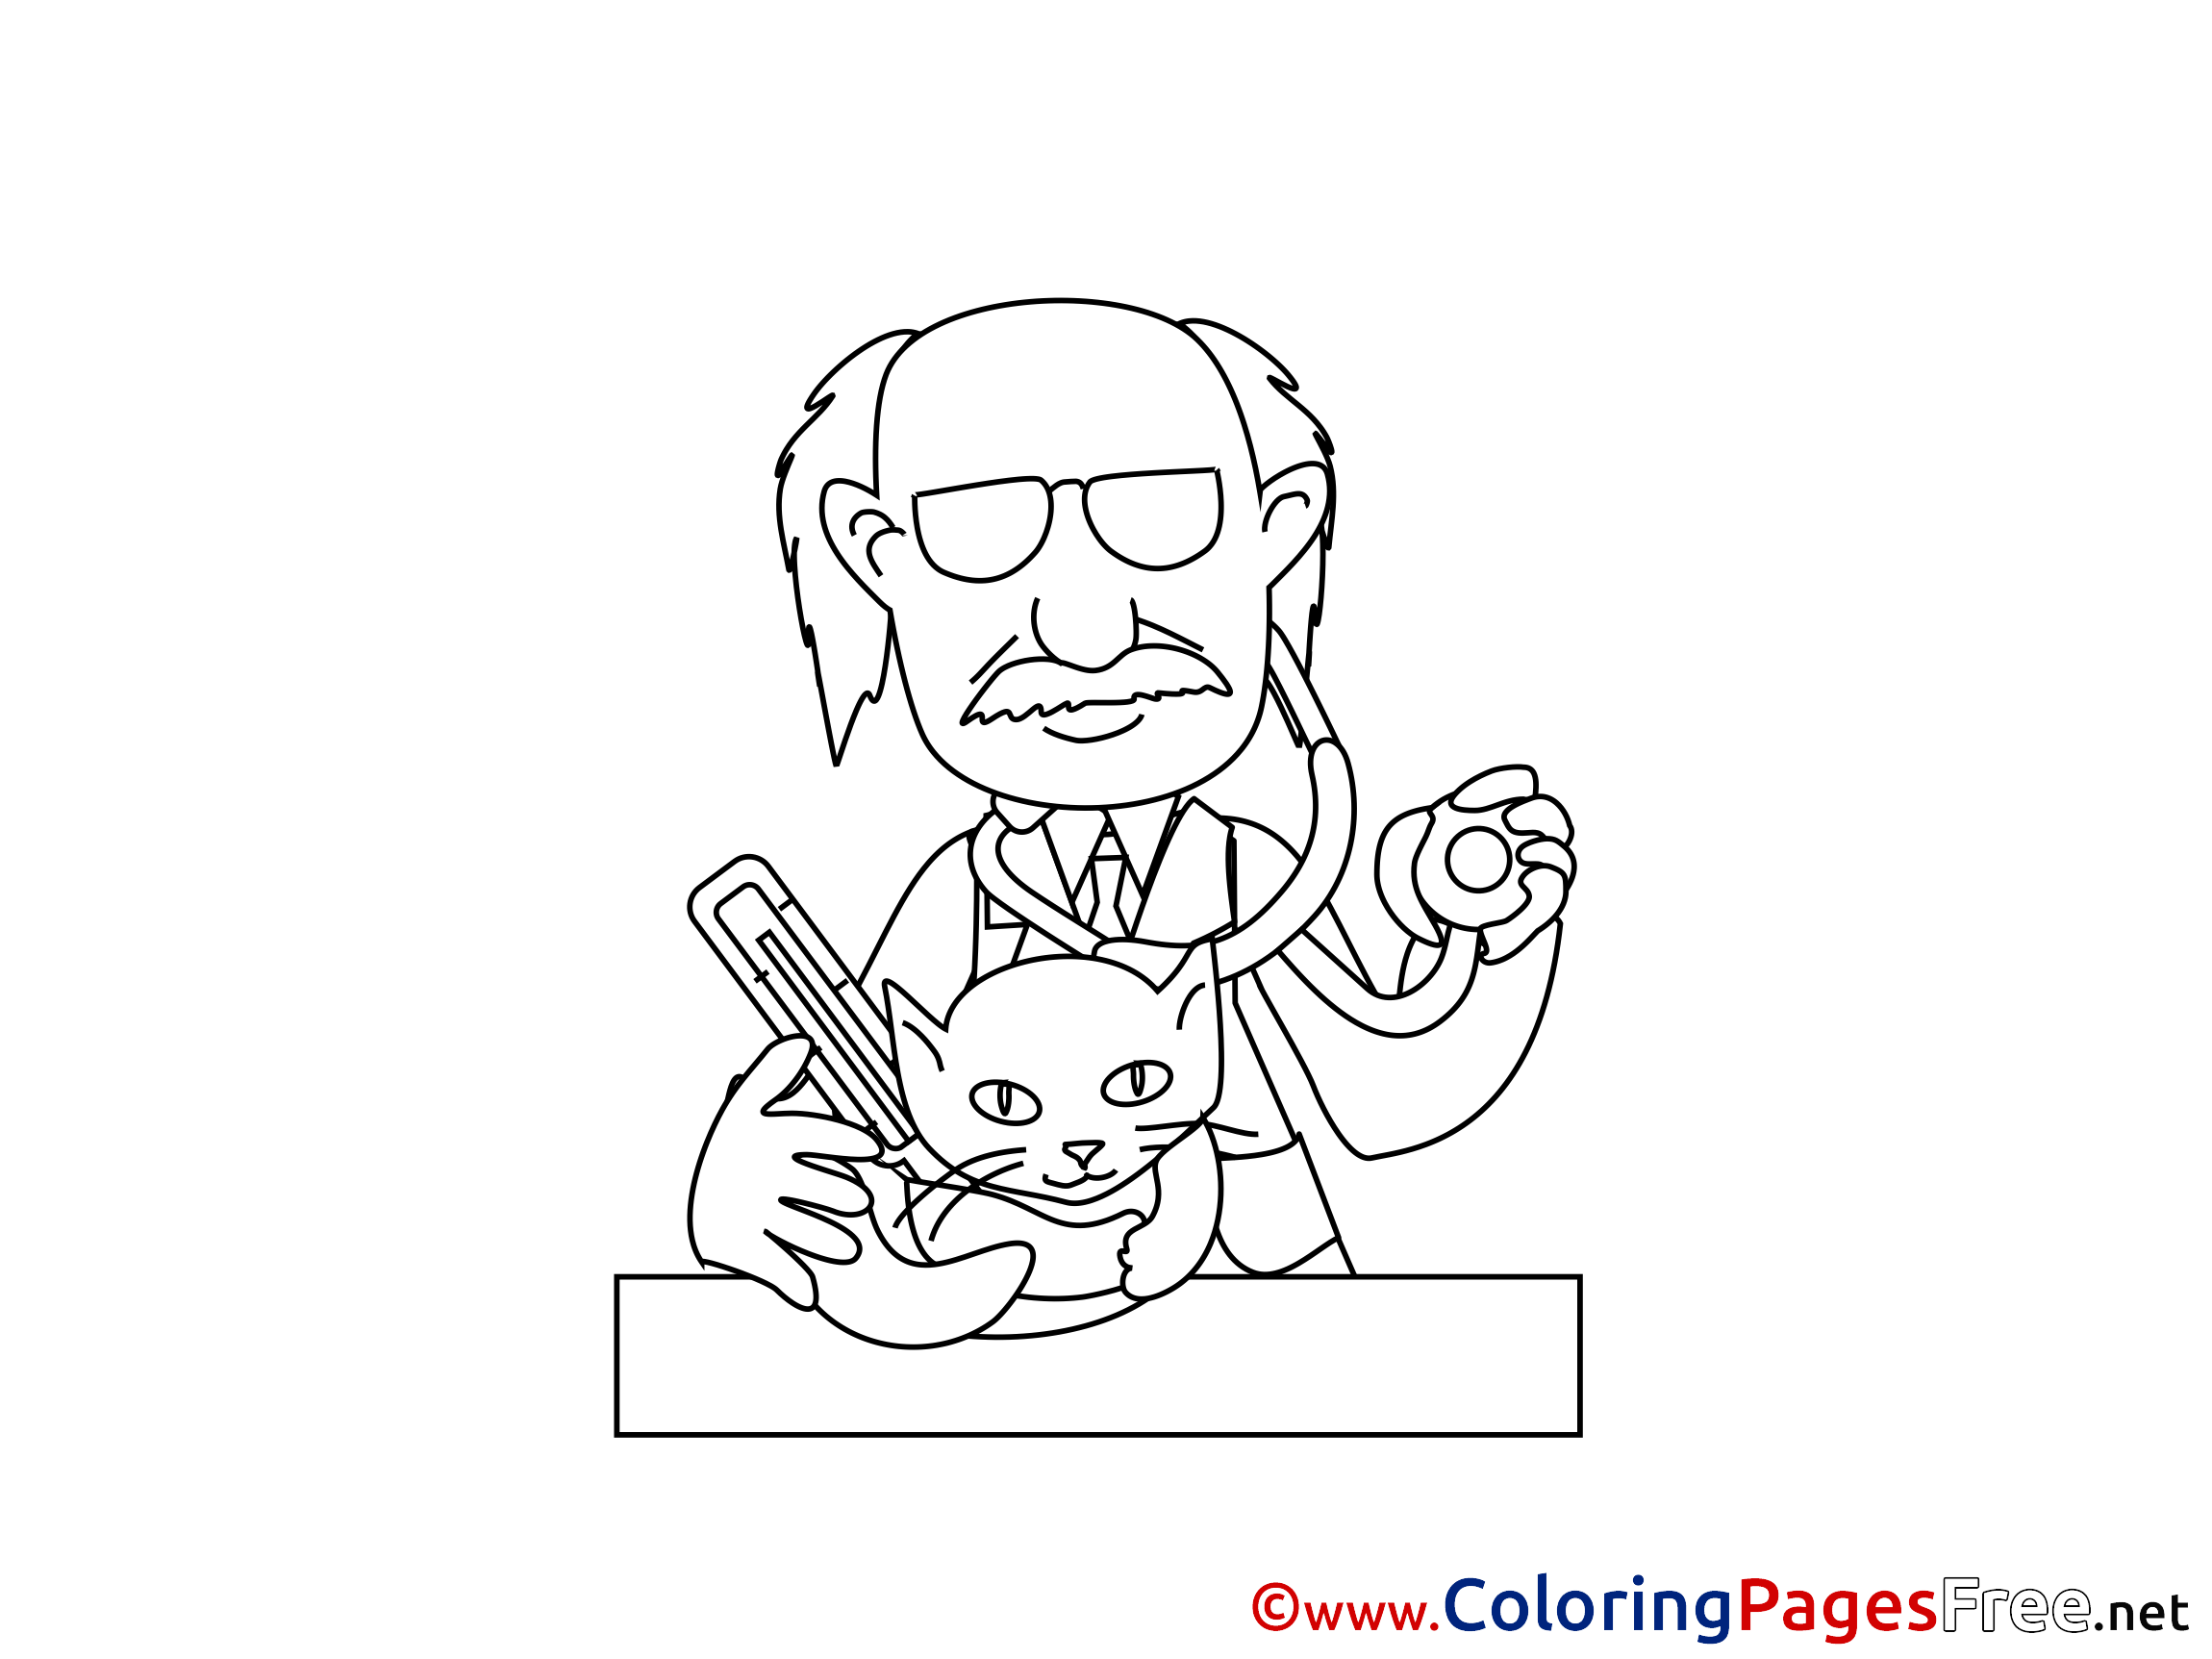 Free printable coloring pages veterinarians - Free Printable Coloring Pages Veterinarians 39